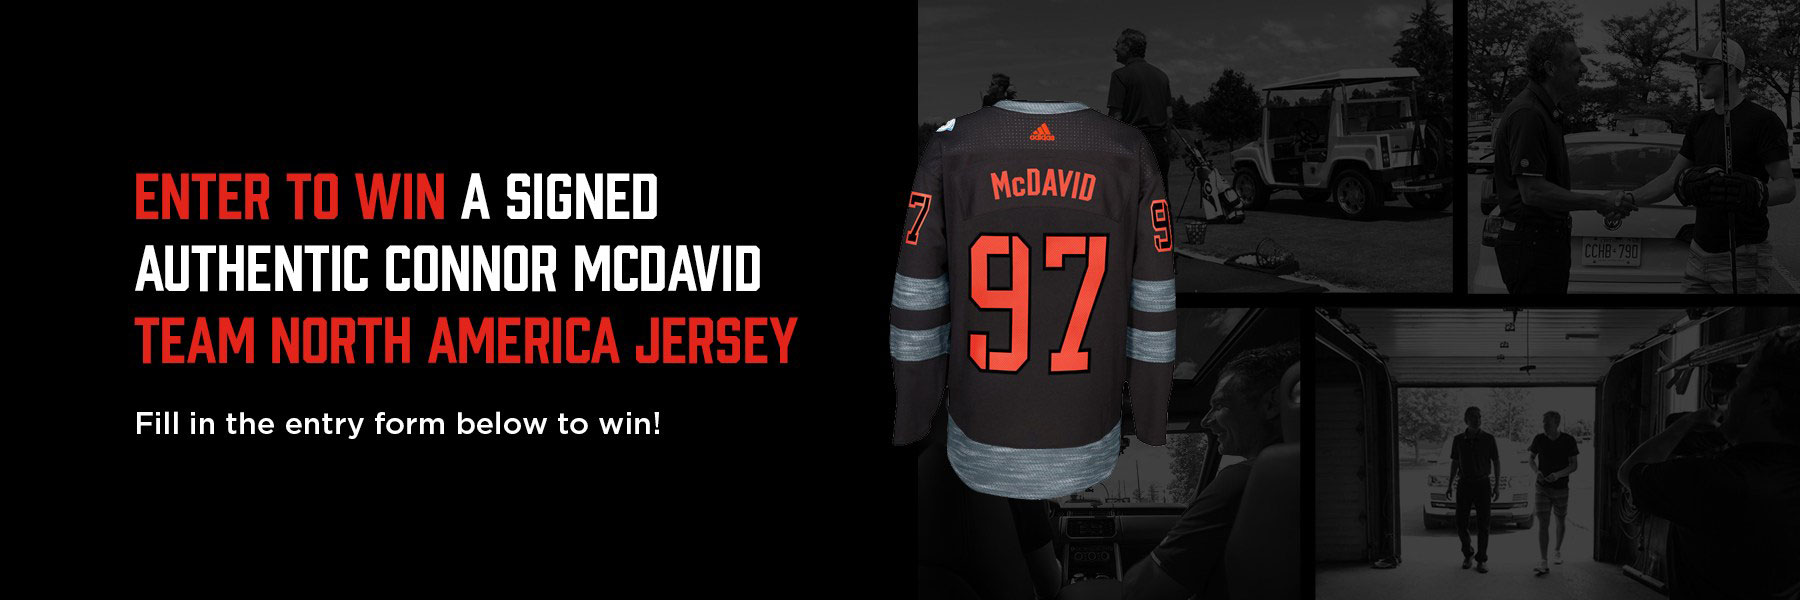 WIn a signed Connor McDavid team North America jersey contest graphic banner